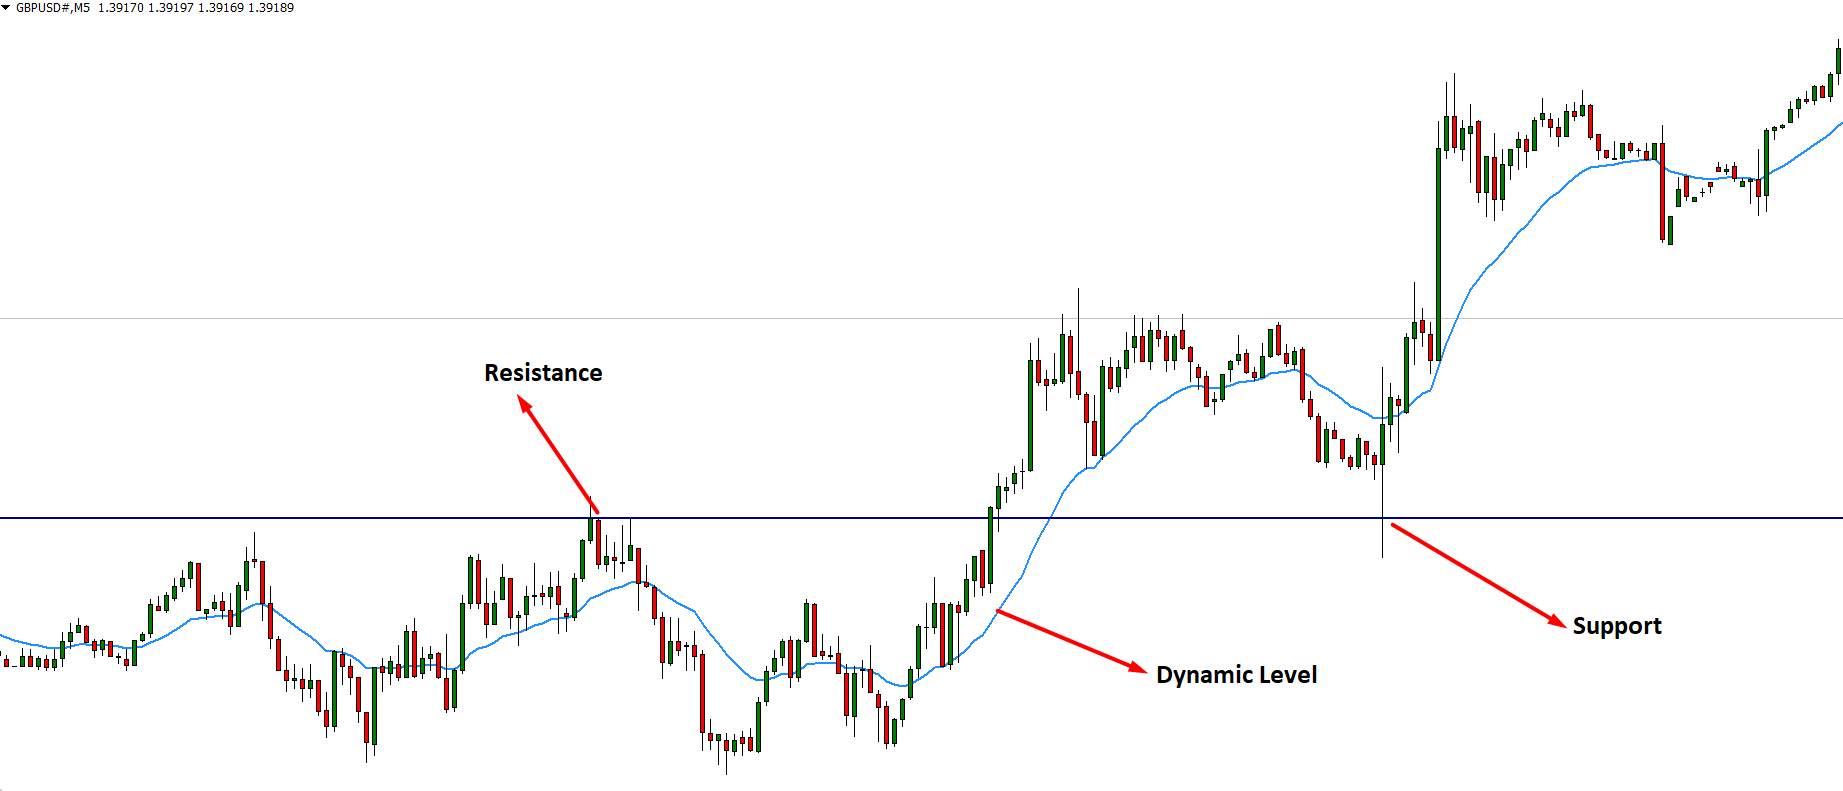 we can see how a single line works as both support and resistance level at a price.